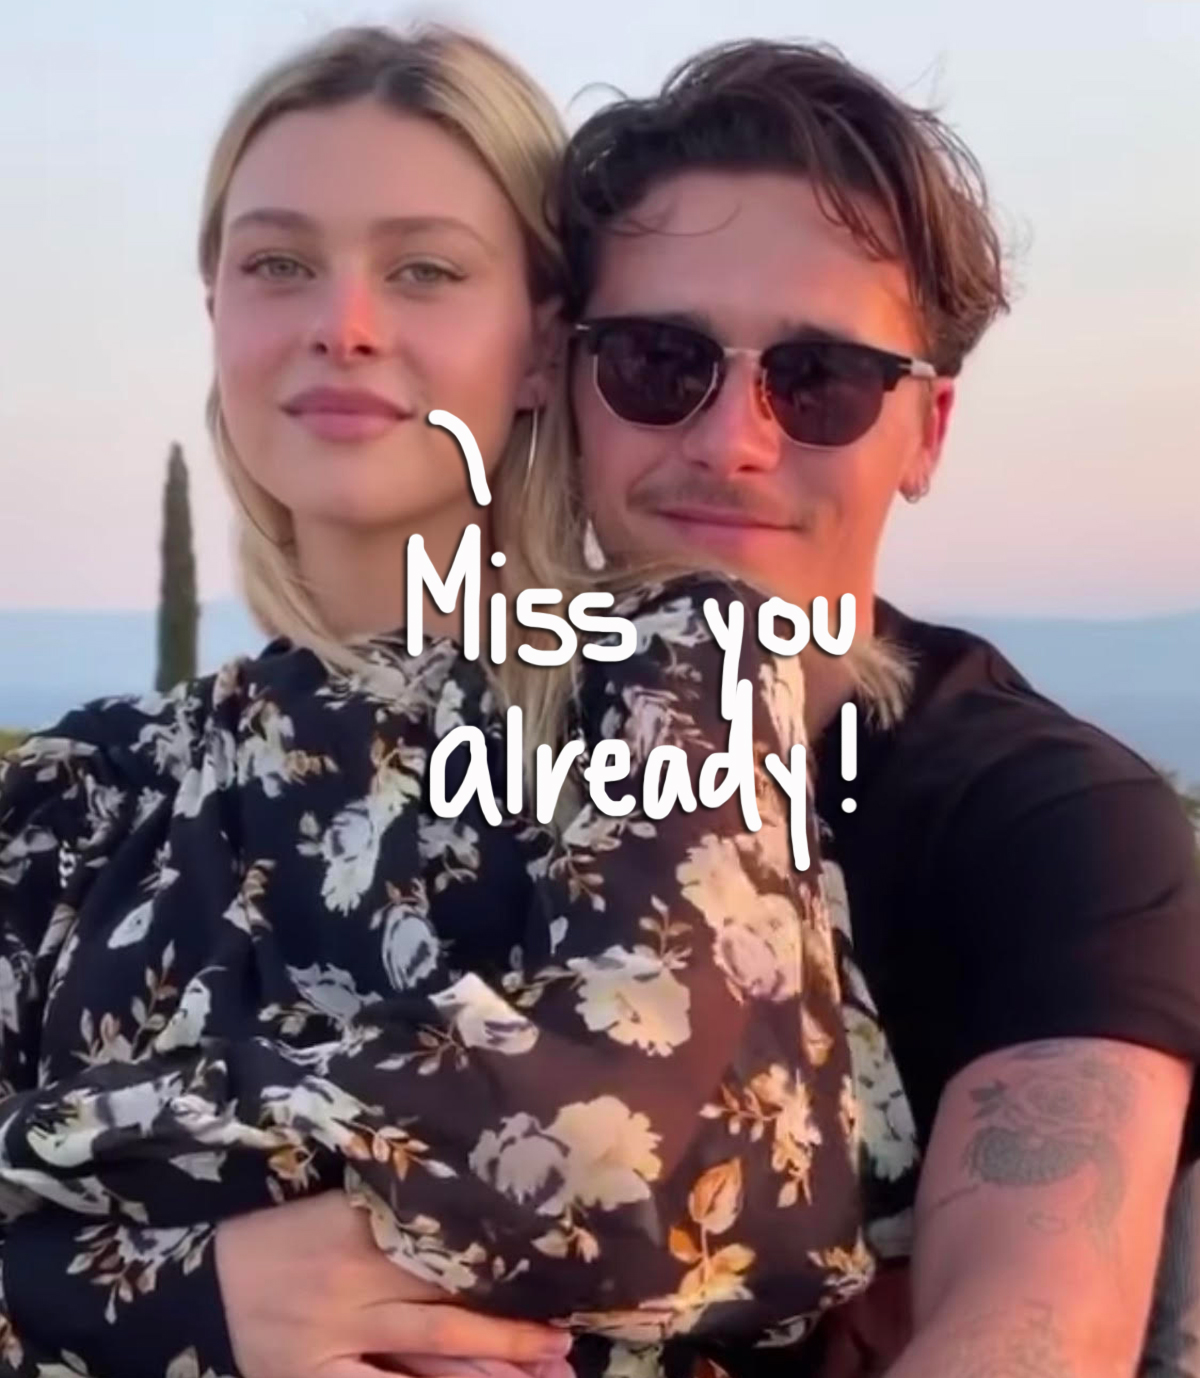 Brooklyn Beckham & Fiancée Nicola Peltz Forced To Spend The Holidays Apart Due To UK's Travel Restrictions